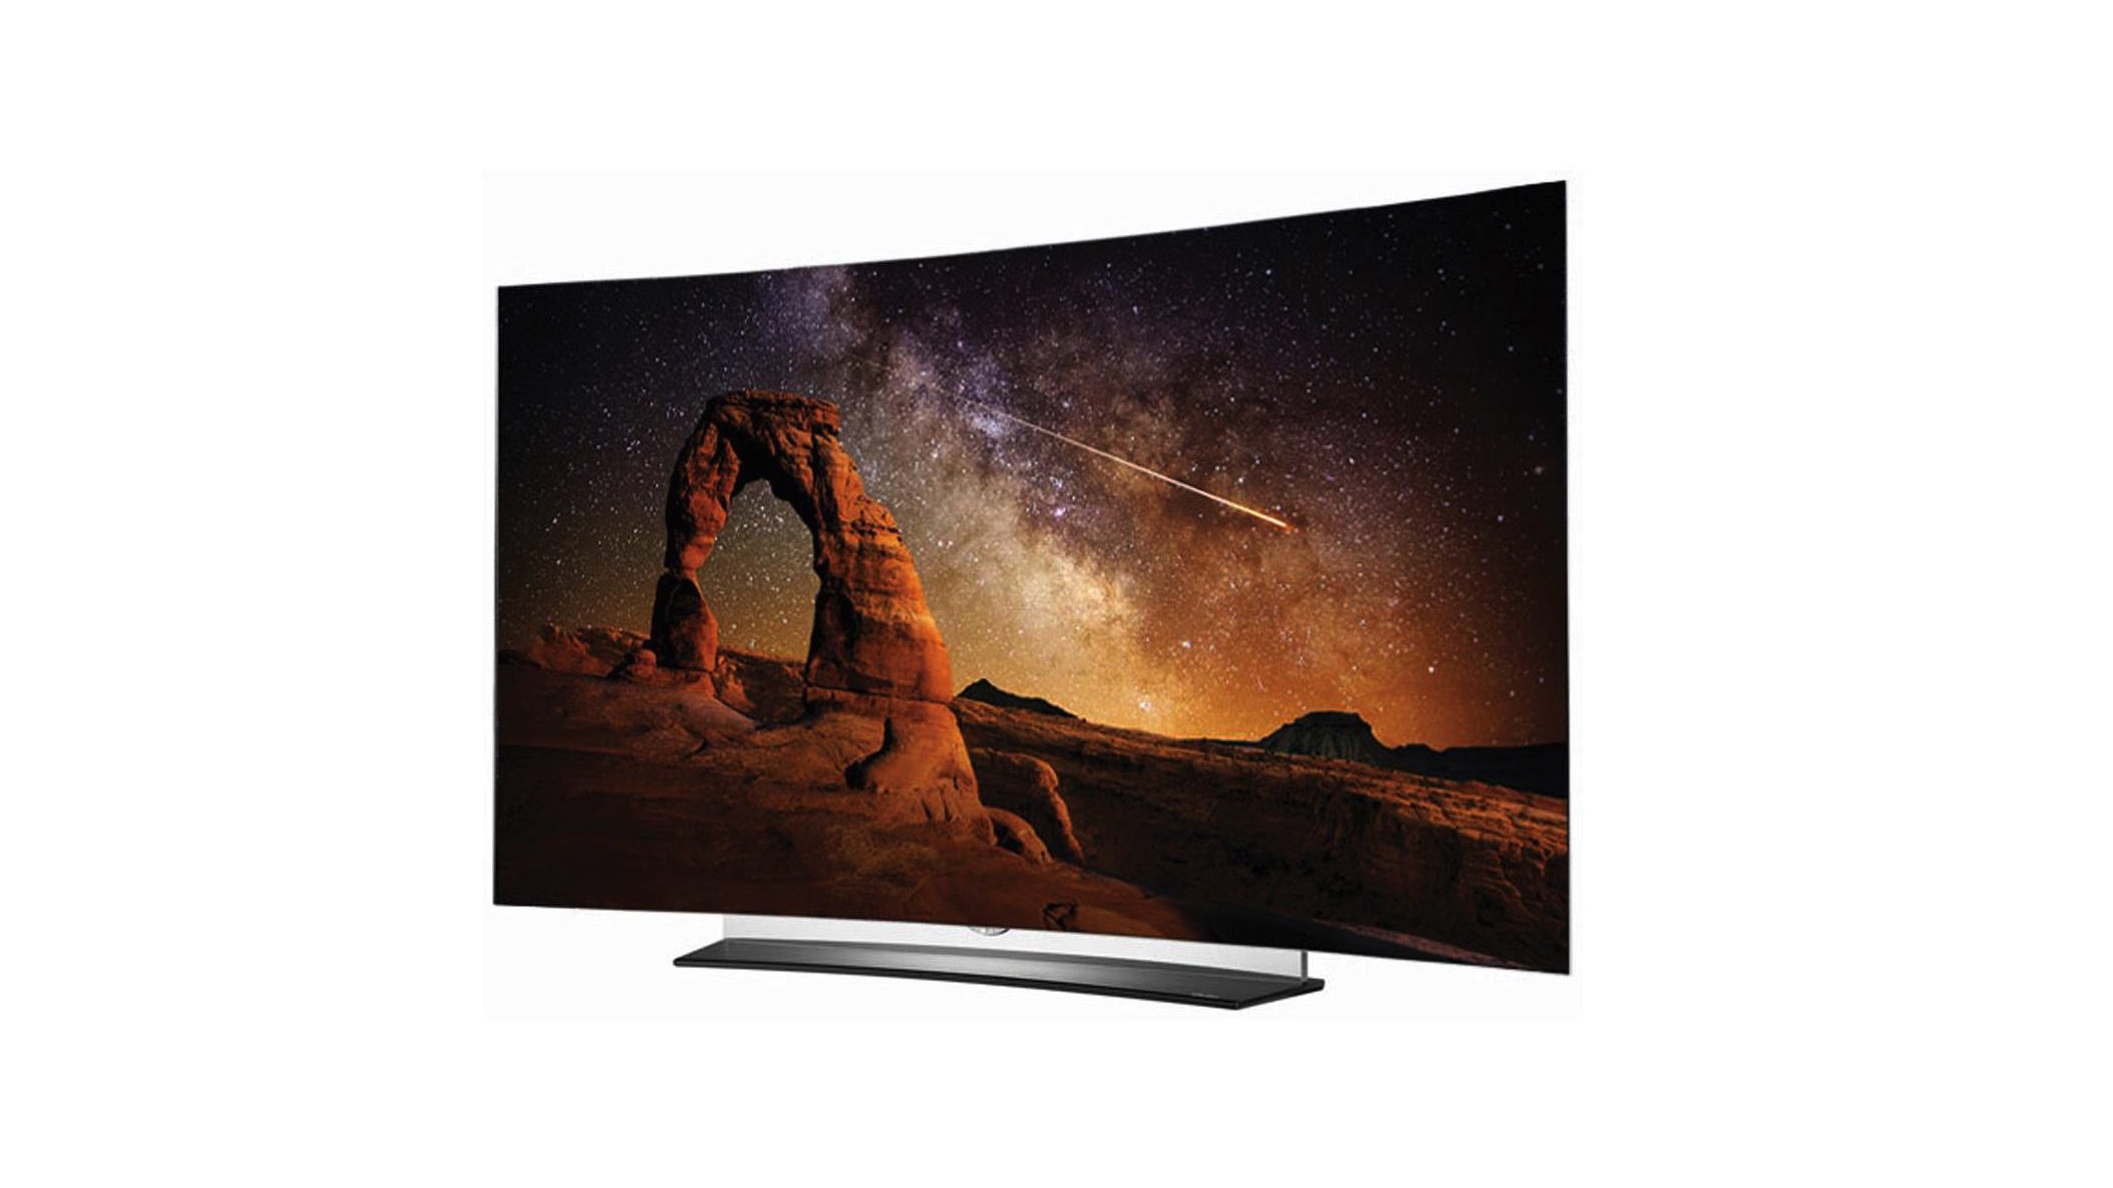 lg tv curved. lg tv curved